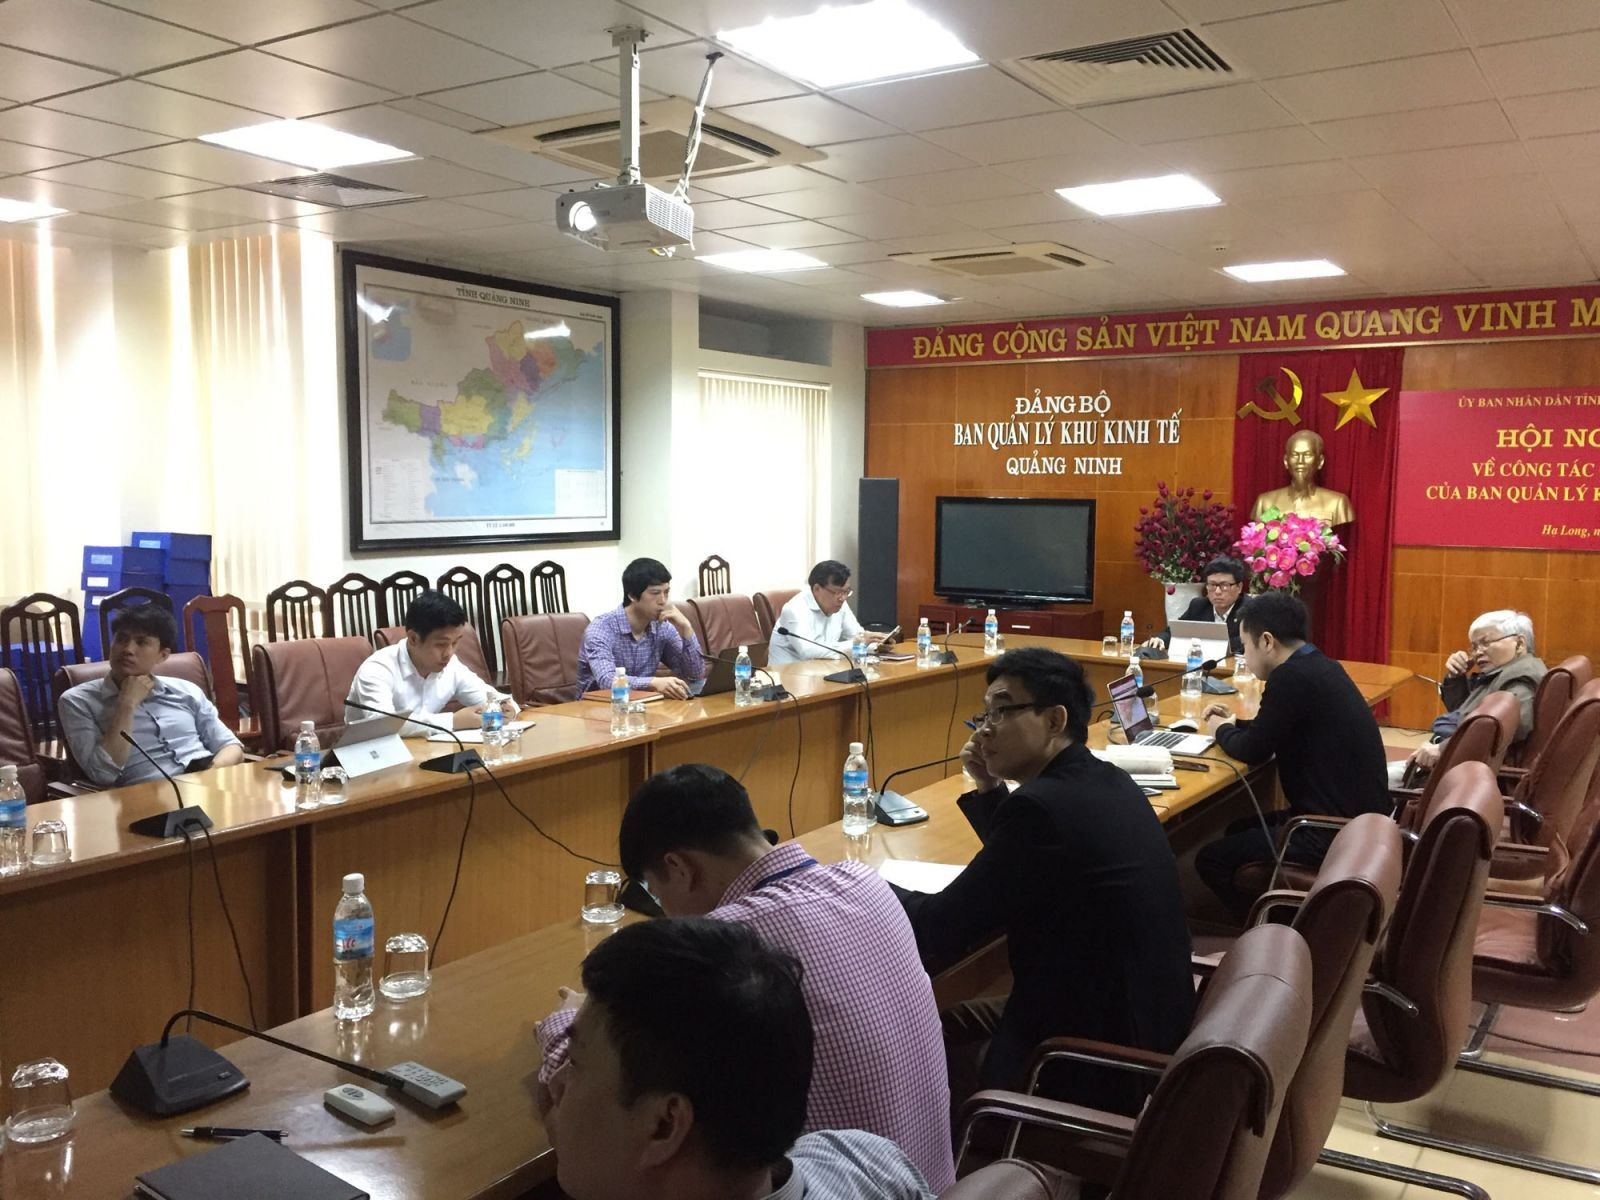 ACUD Tech Attended the Meeting with Quang Ninh Economic Zone Authority to Implement Building the Planning Database